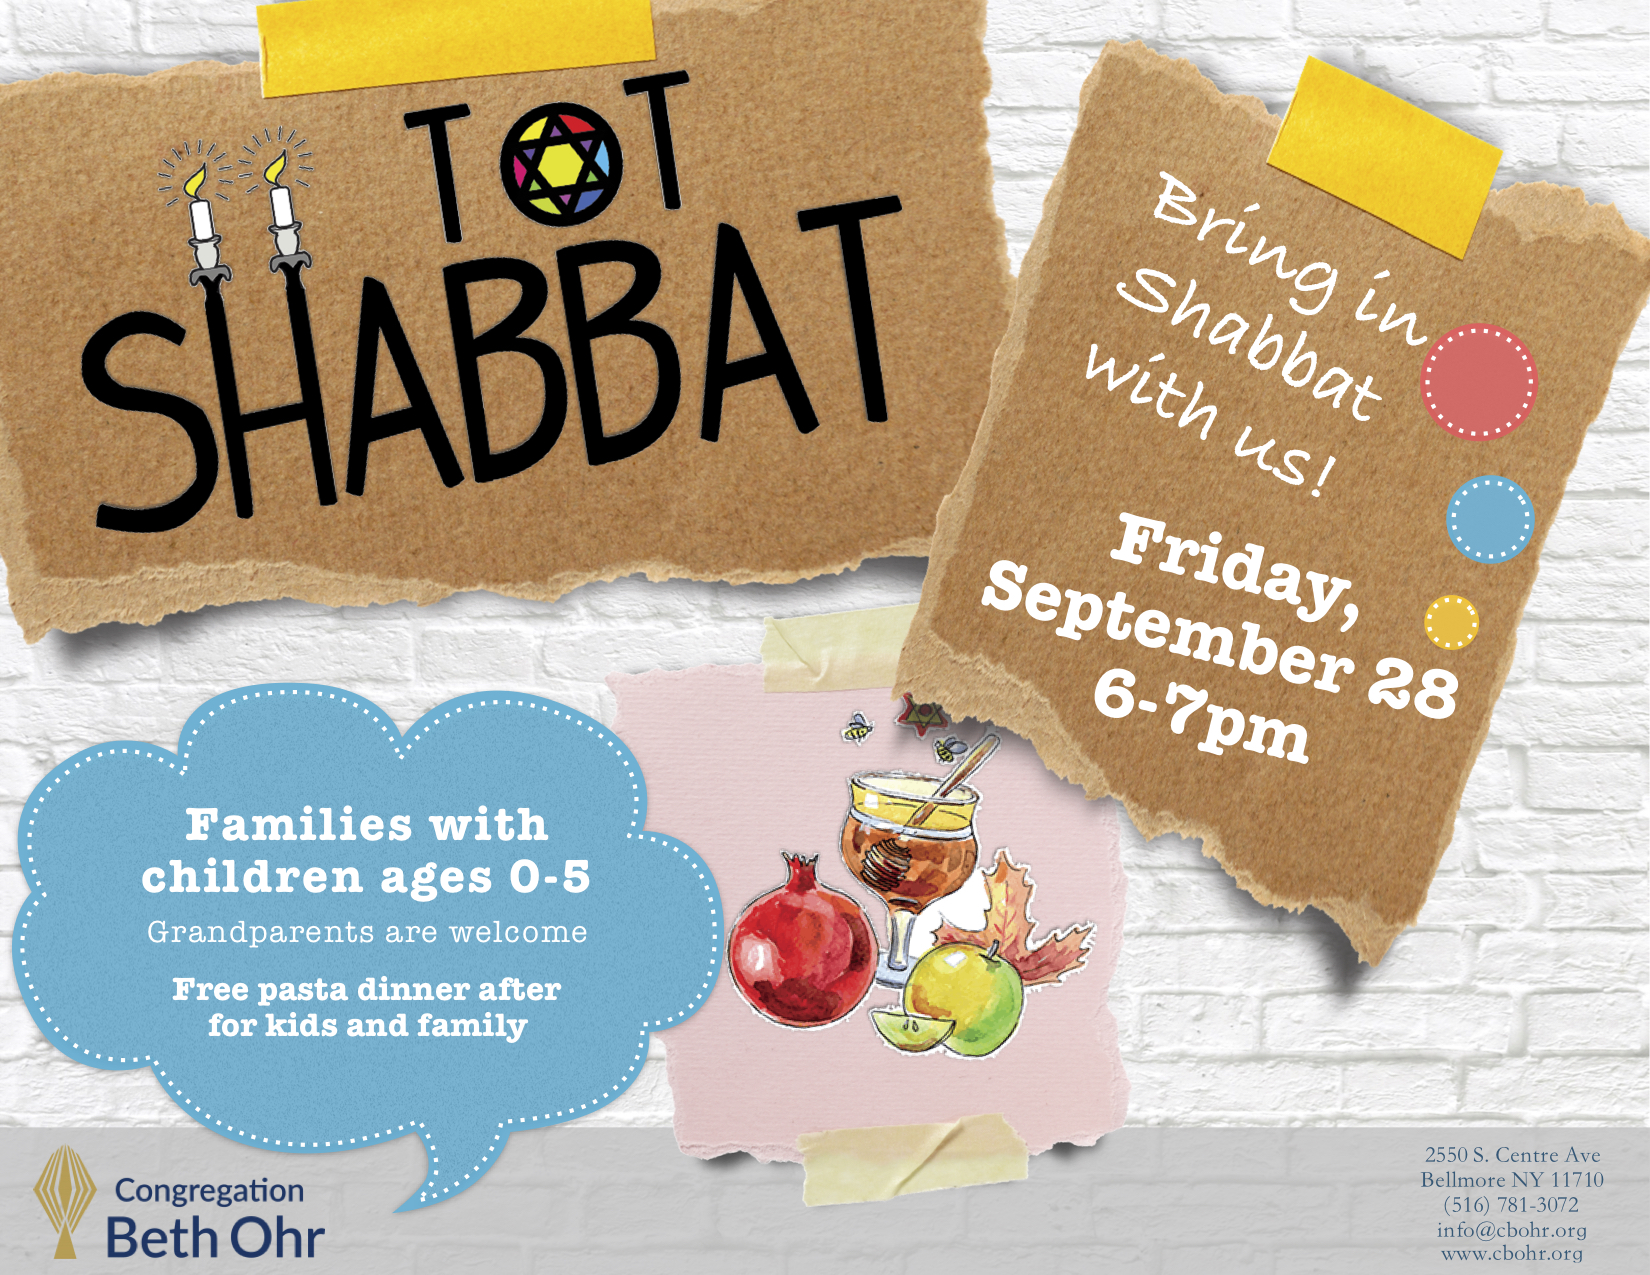 Tot Shabbat: for families with children ages 0-5